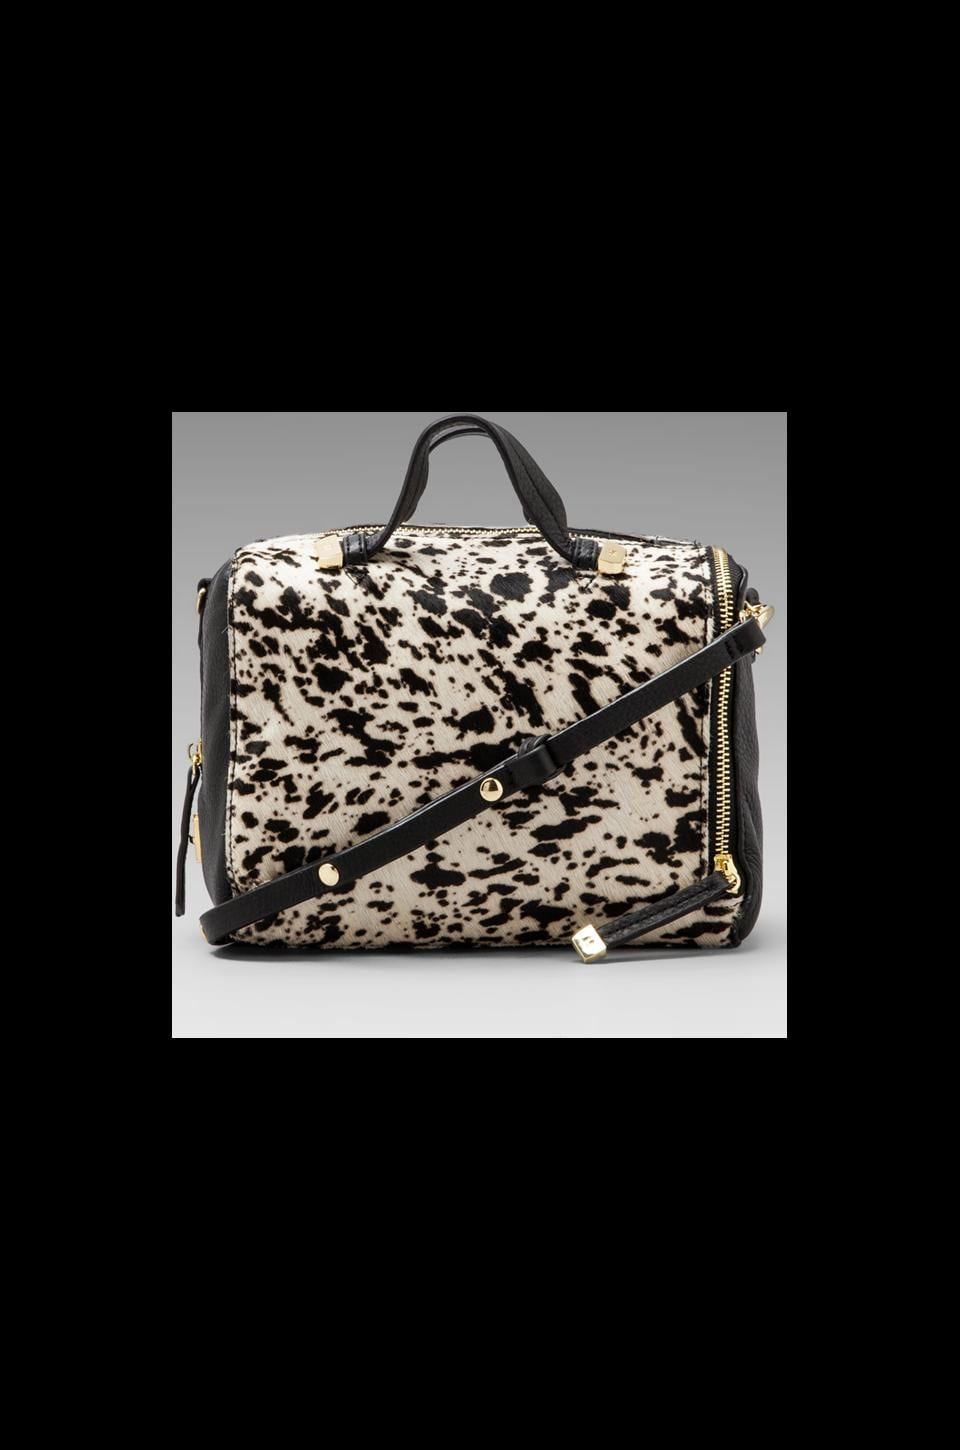 Halston Heritage Baby Satchel in Speckled Pony